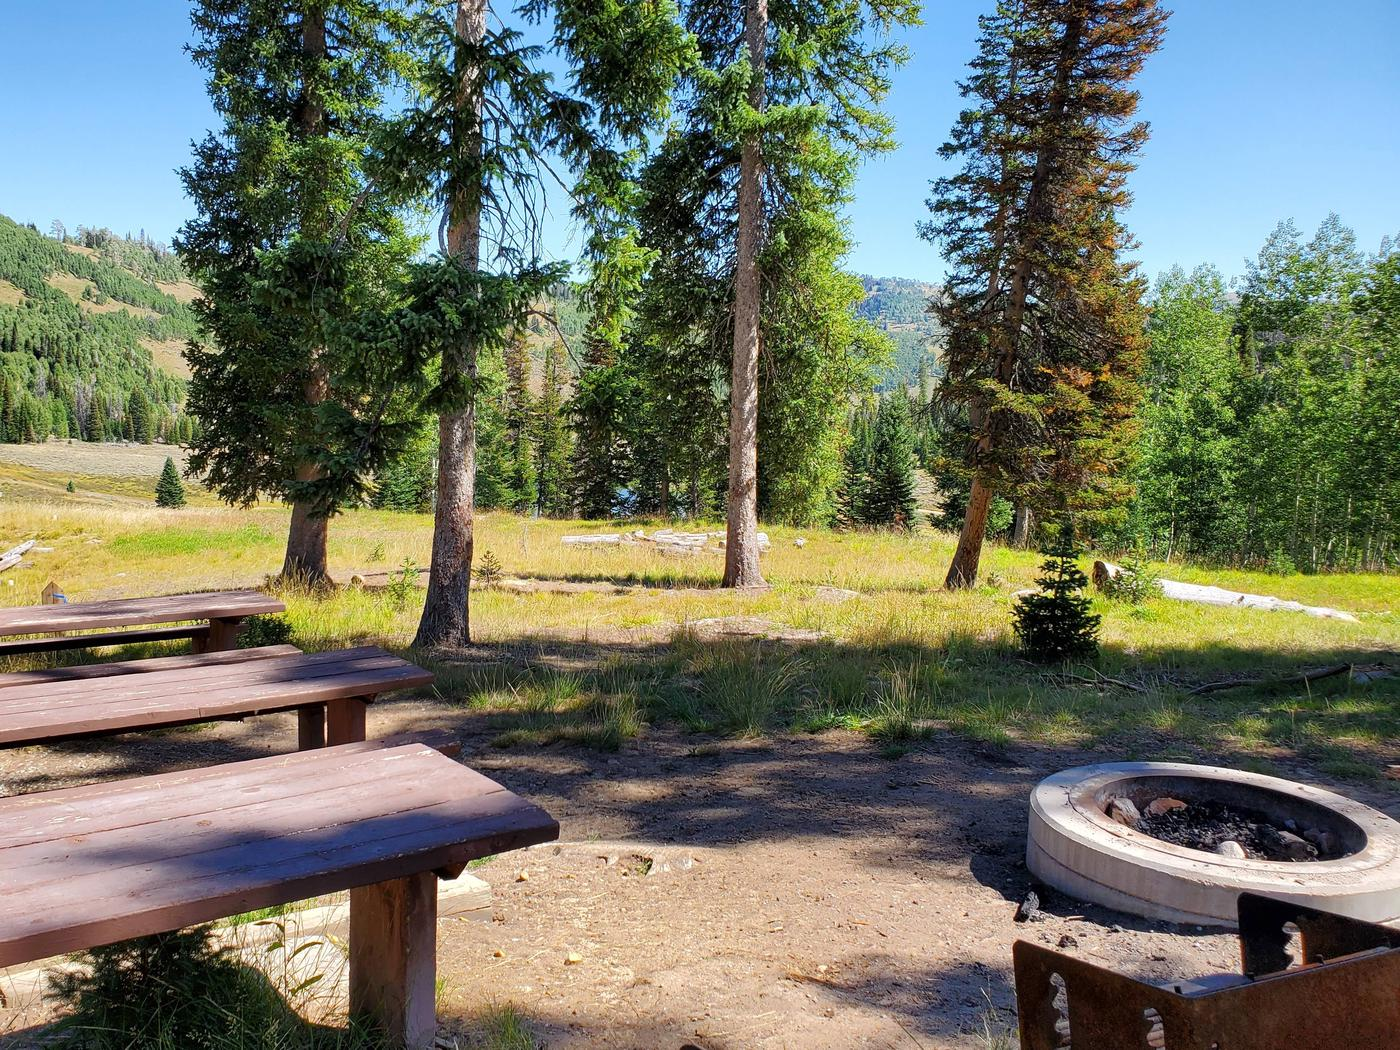 Flat Canyon Campground Site #13